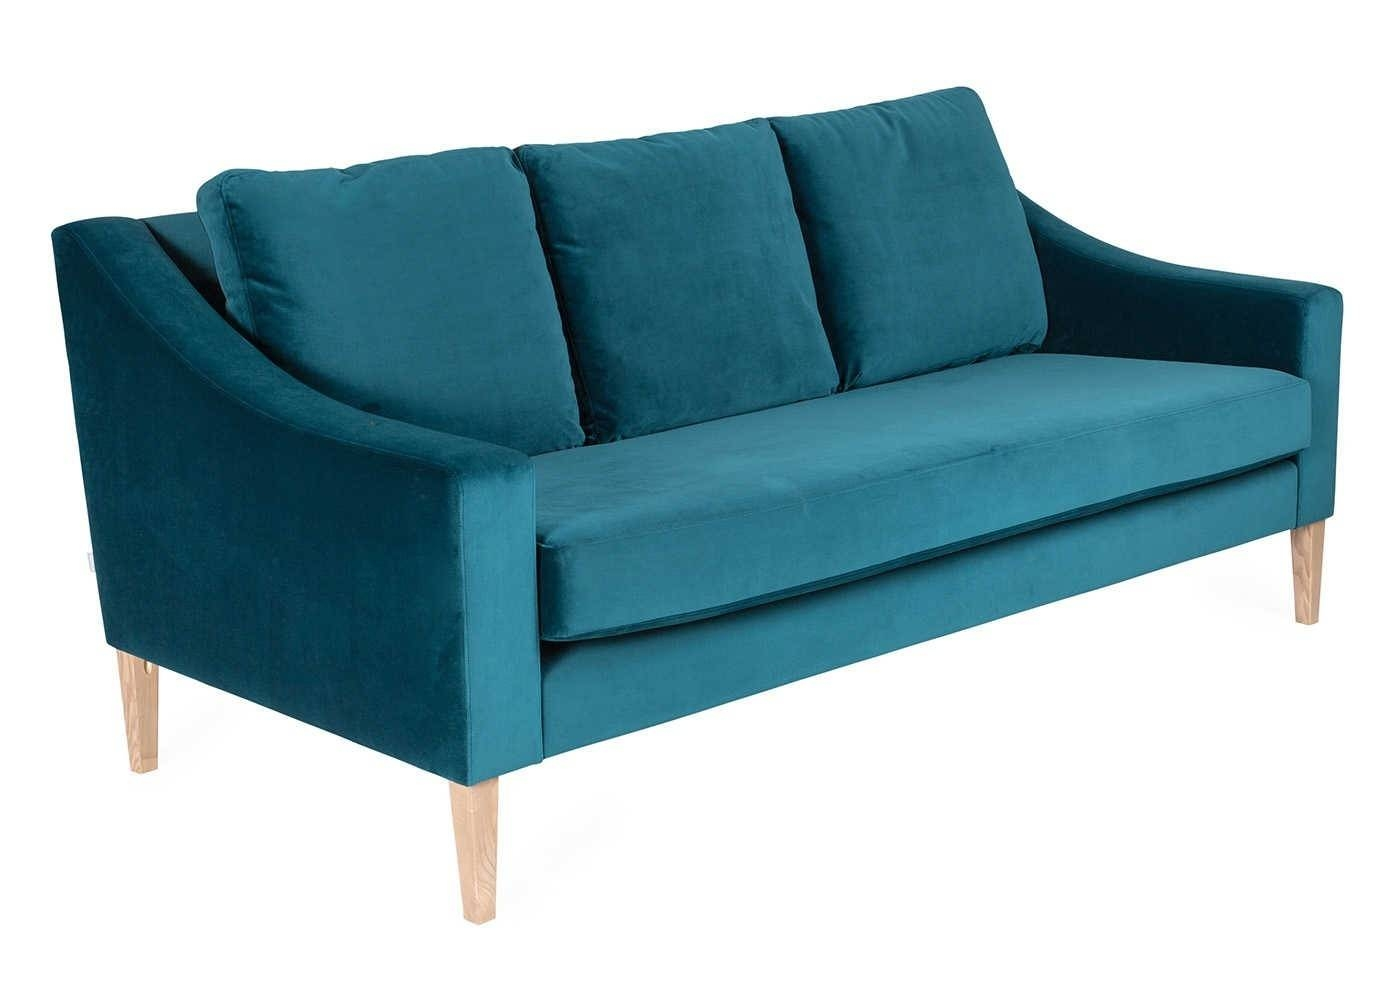 Richmond 4 Seater Sofa - 4 Seater Sofa - Sofas throughout Richmond Sofas (Image 11 of 30)